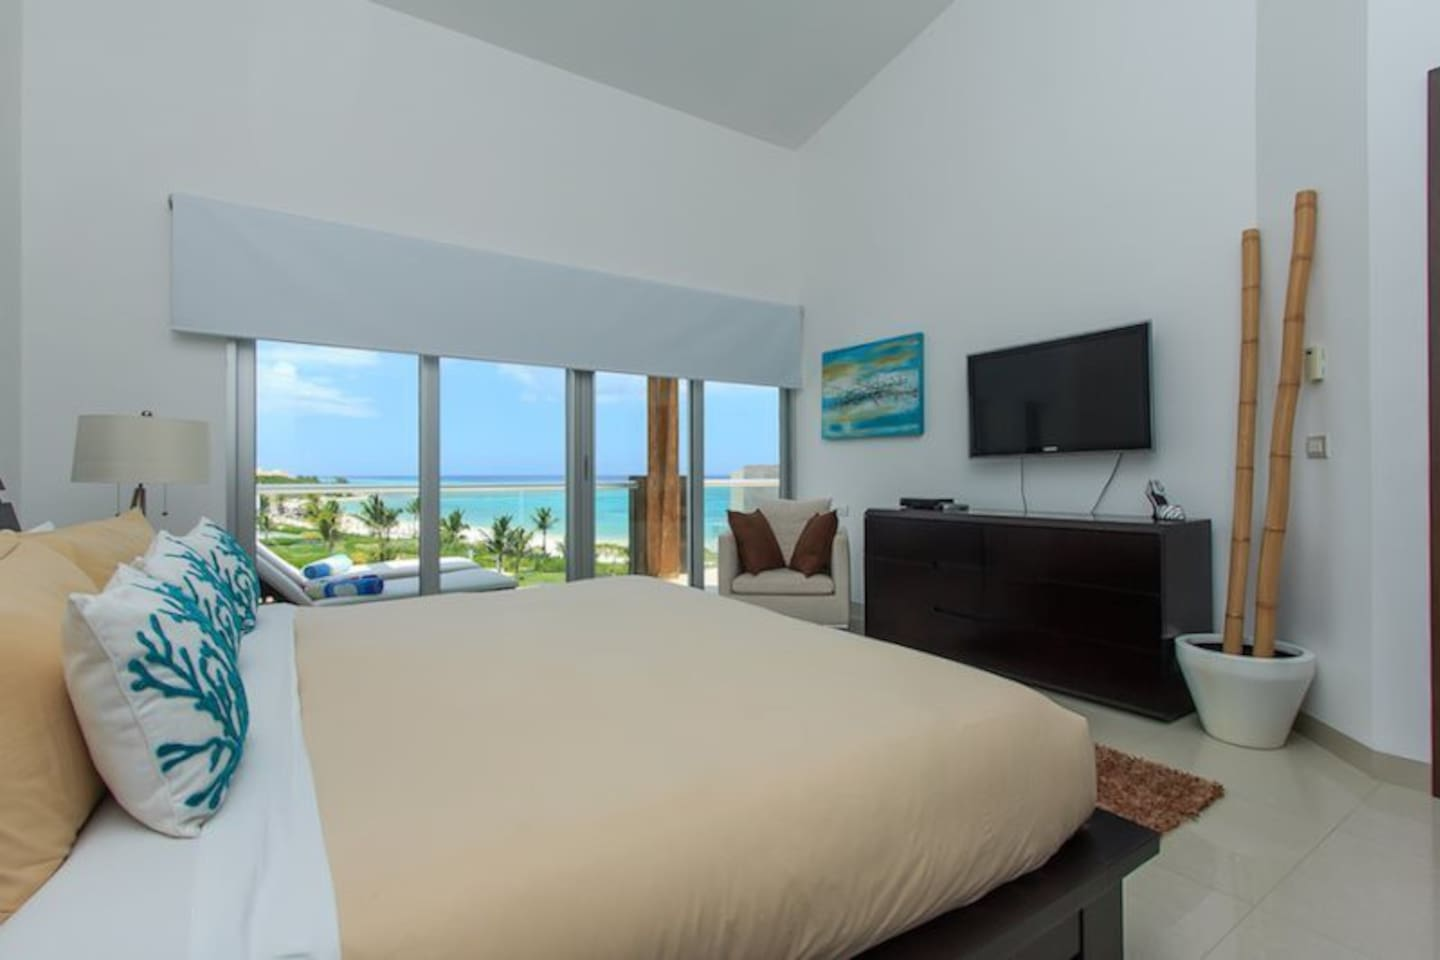 Condo Apartment in front of the beach